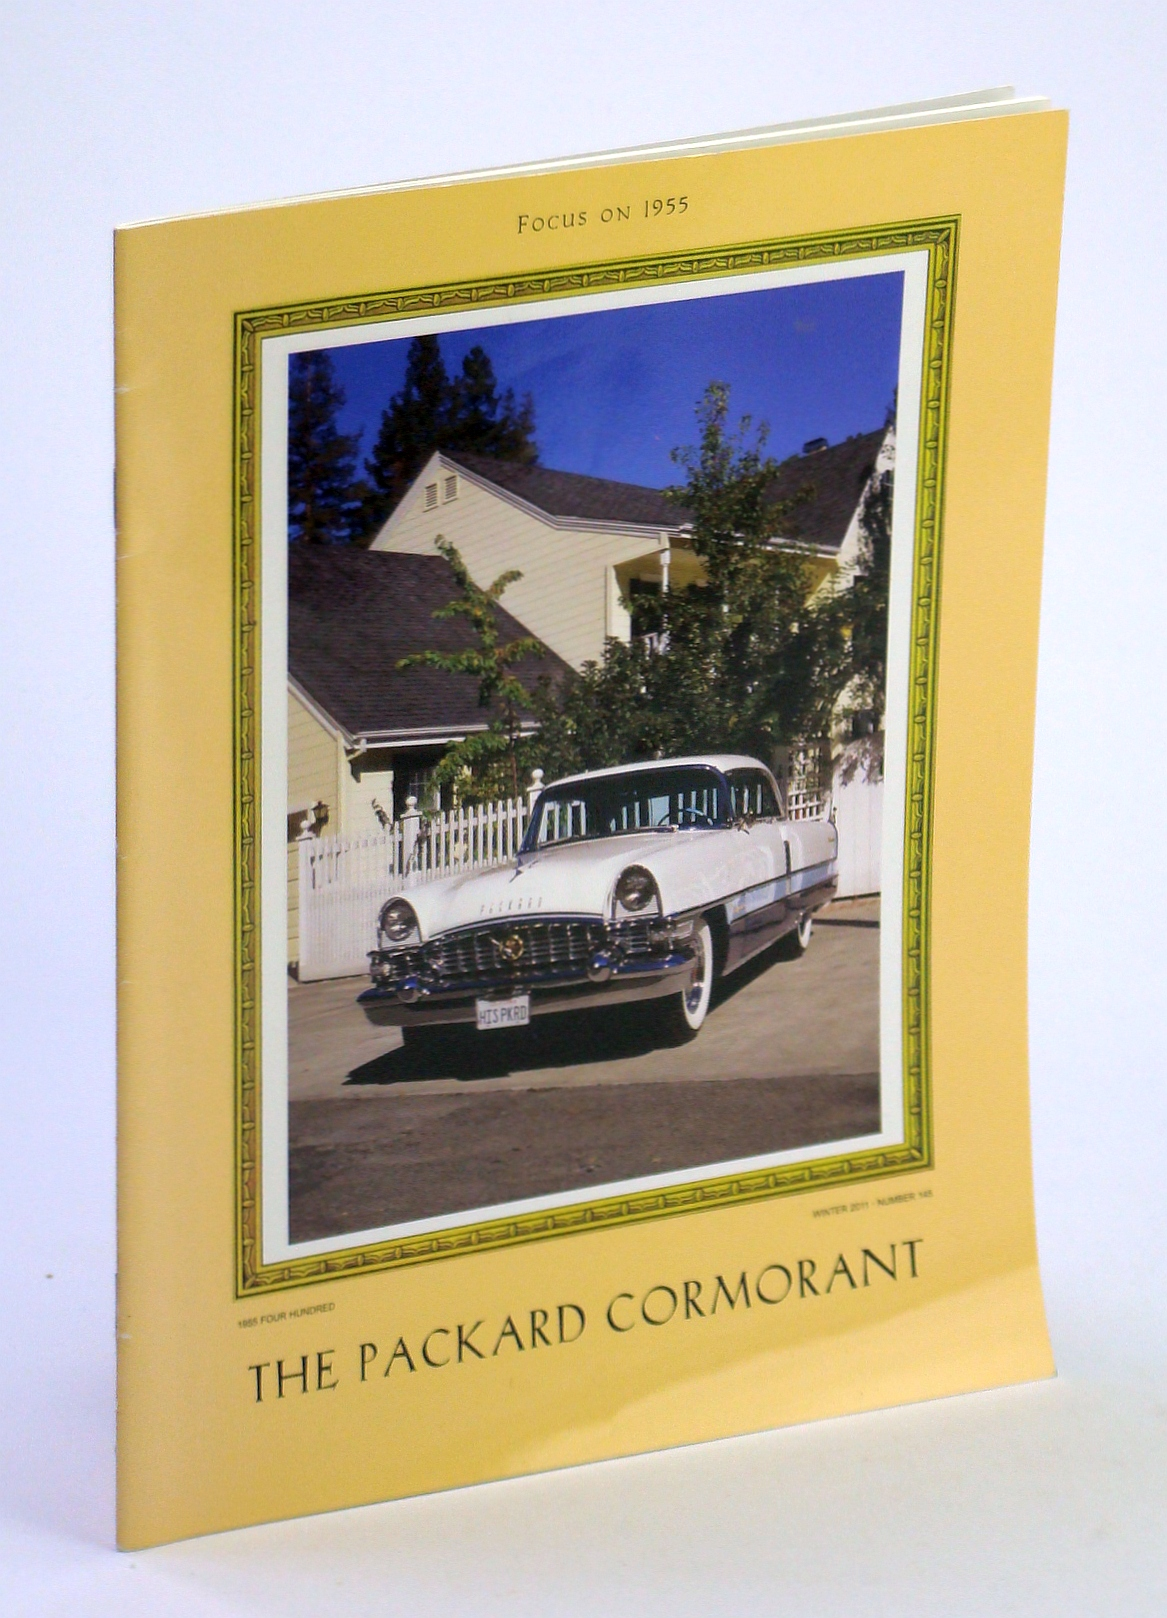 Image for The Packard Cormorant - The International Magazine of Packard Automobile Classics, Winter 2011 - Volume LVIII, Number 4 - Focus on 1955 / 1955 Four Hundred Cover Photo